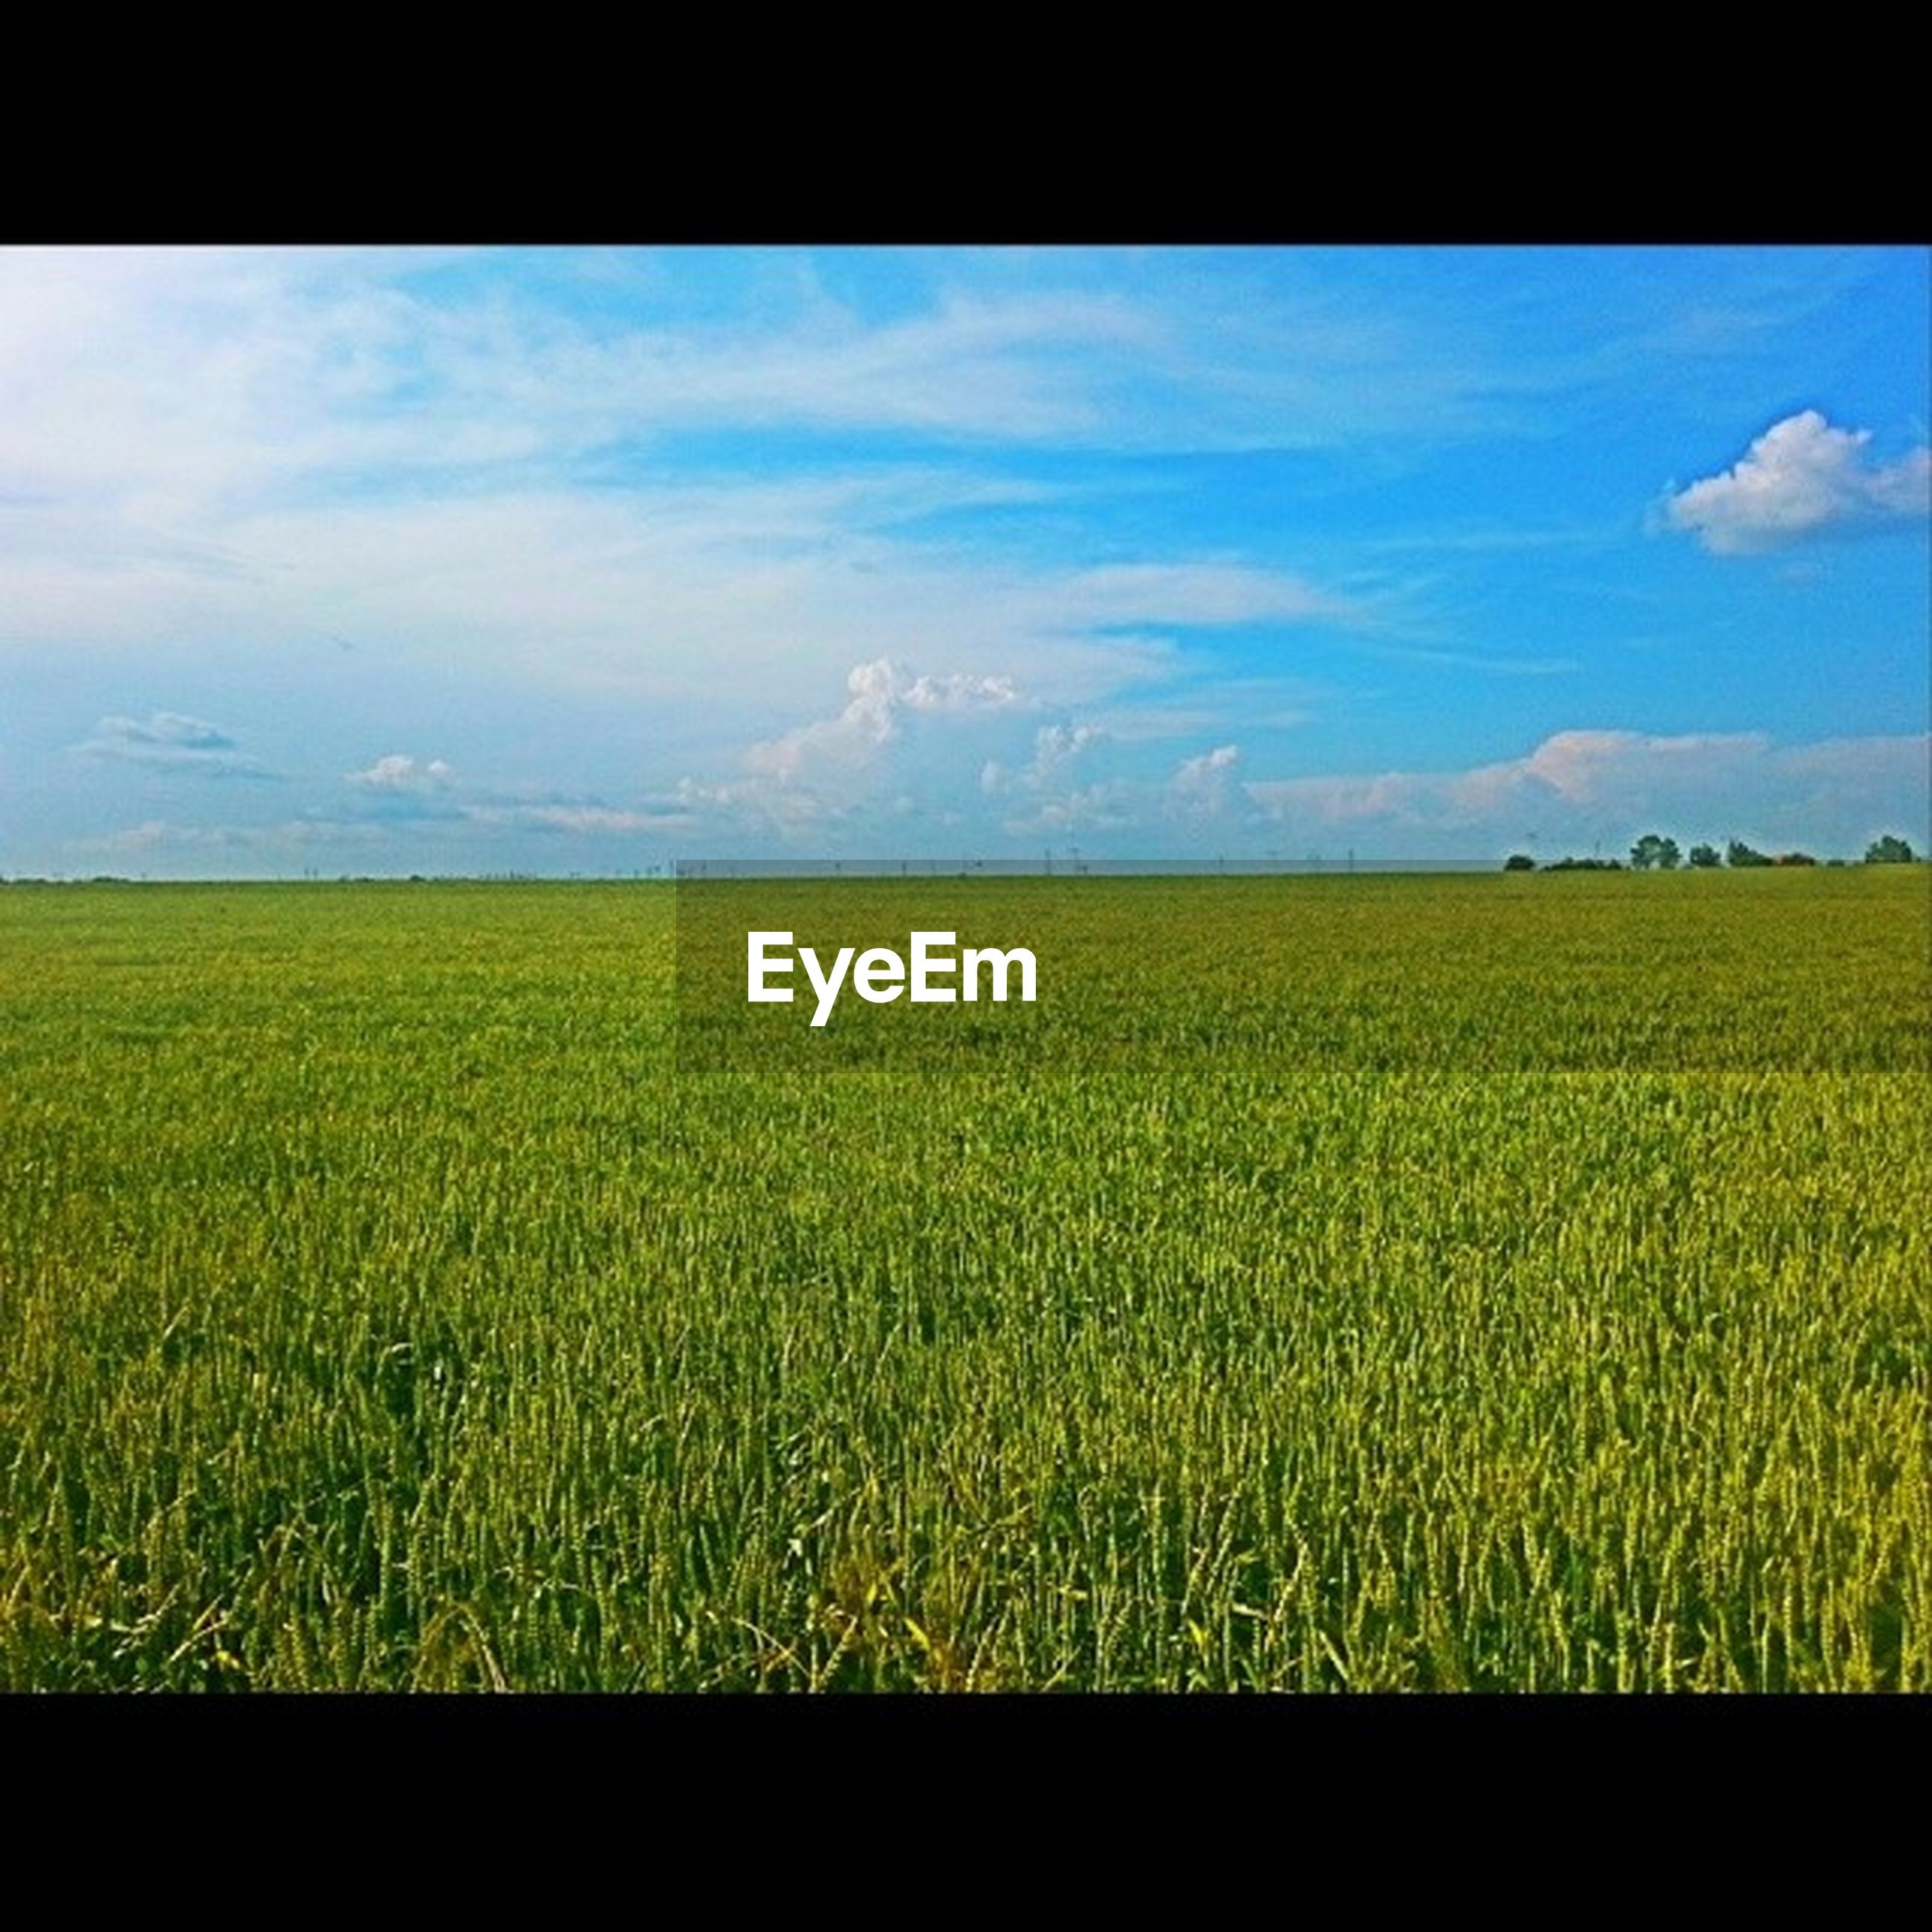 sky, landscape, field, rural scene, tranquil scene, agriculture, beauty in nature, yellow, scenics, tranquility, cloud - sky, transfer print, nature, farm, cloud, growth, crop, horizon over land, cloudy, auto post production filter